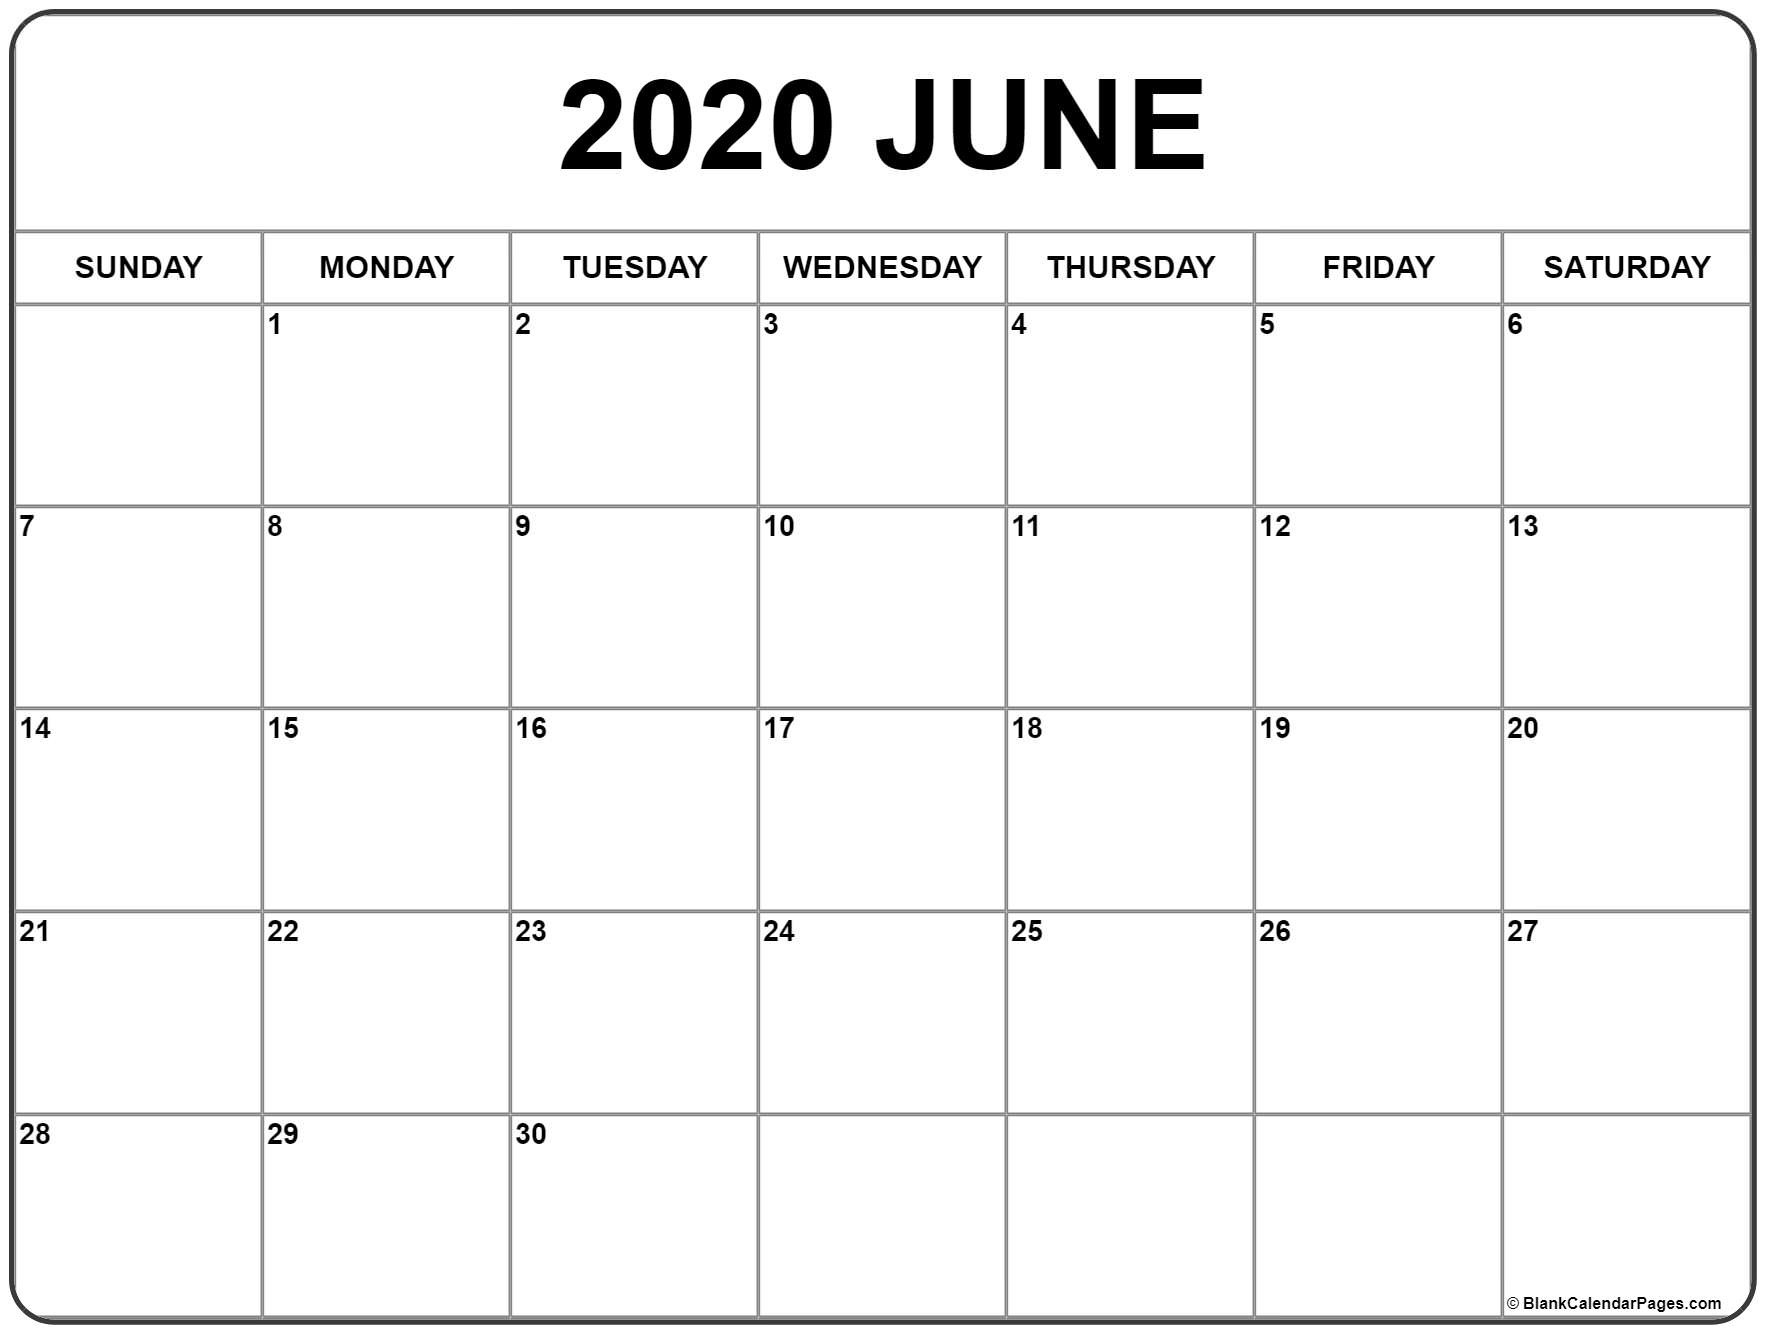 Calendar Of National Days June 2020 | Example Calendar Printable inside National Days June 2020